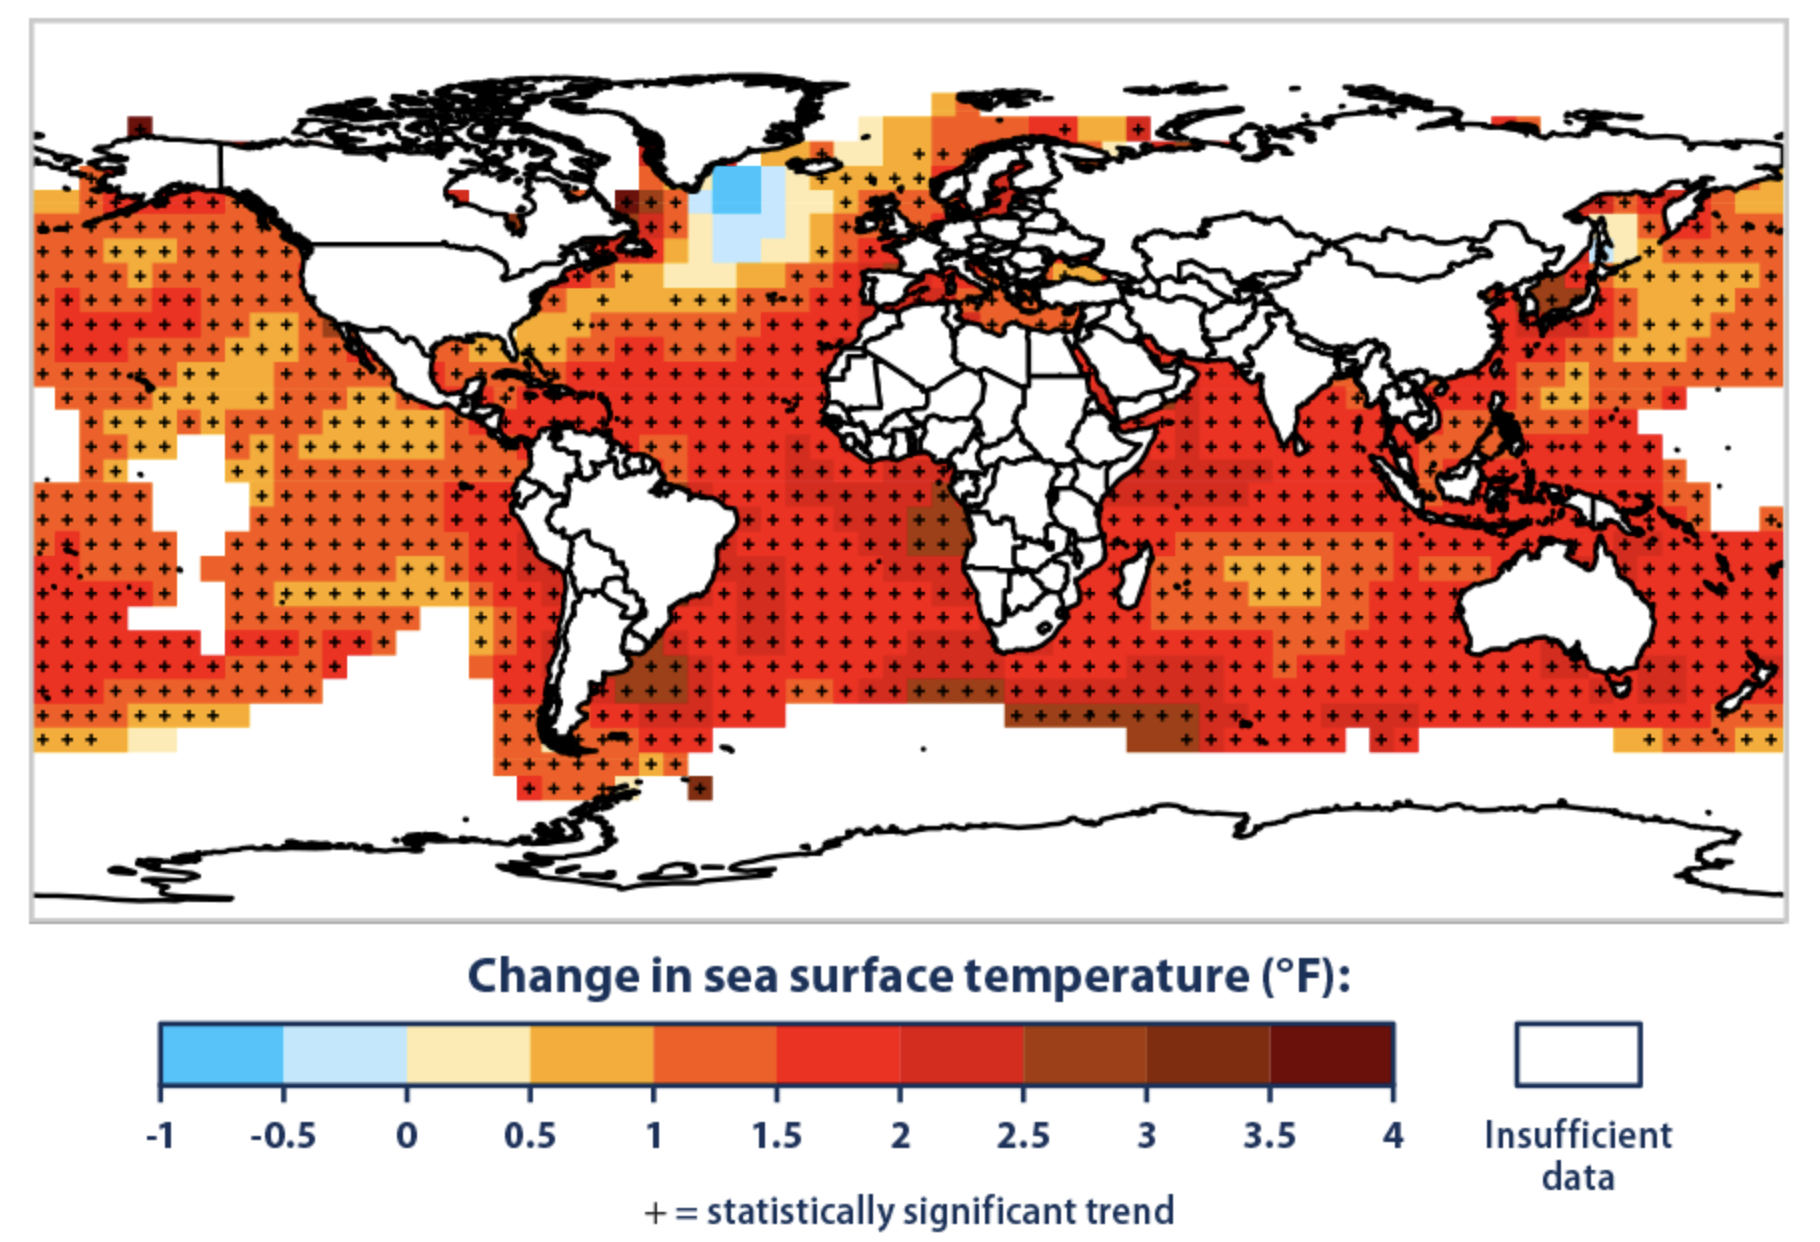 world map showing change in sea surface temperature represented by varying color shades with an overall increase in surface temperature from 1901 to 2015